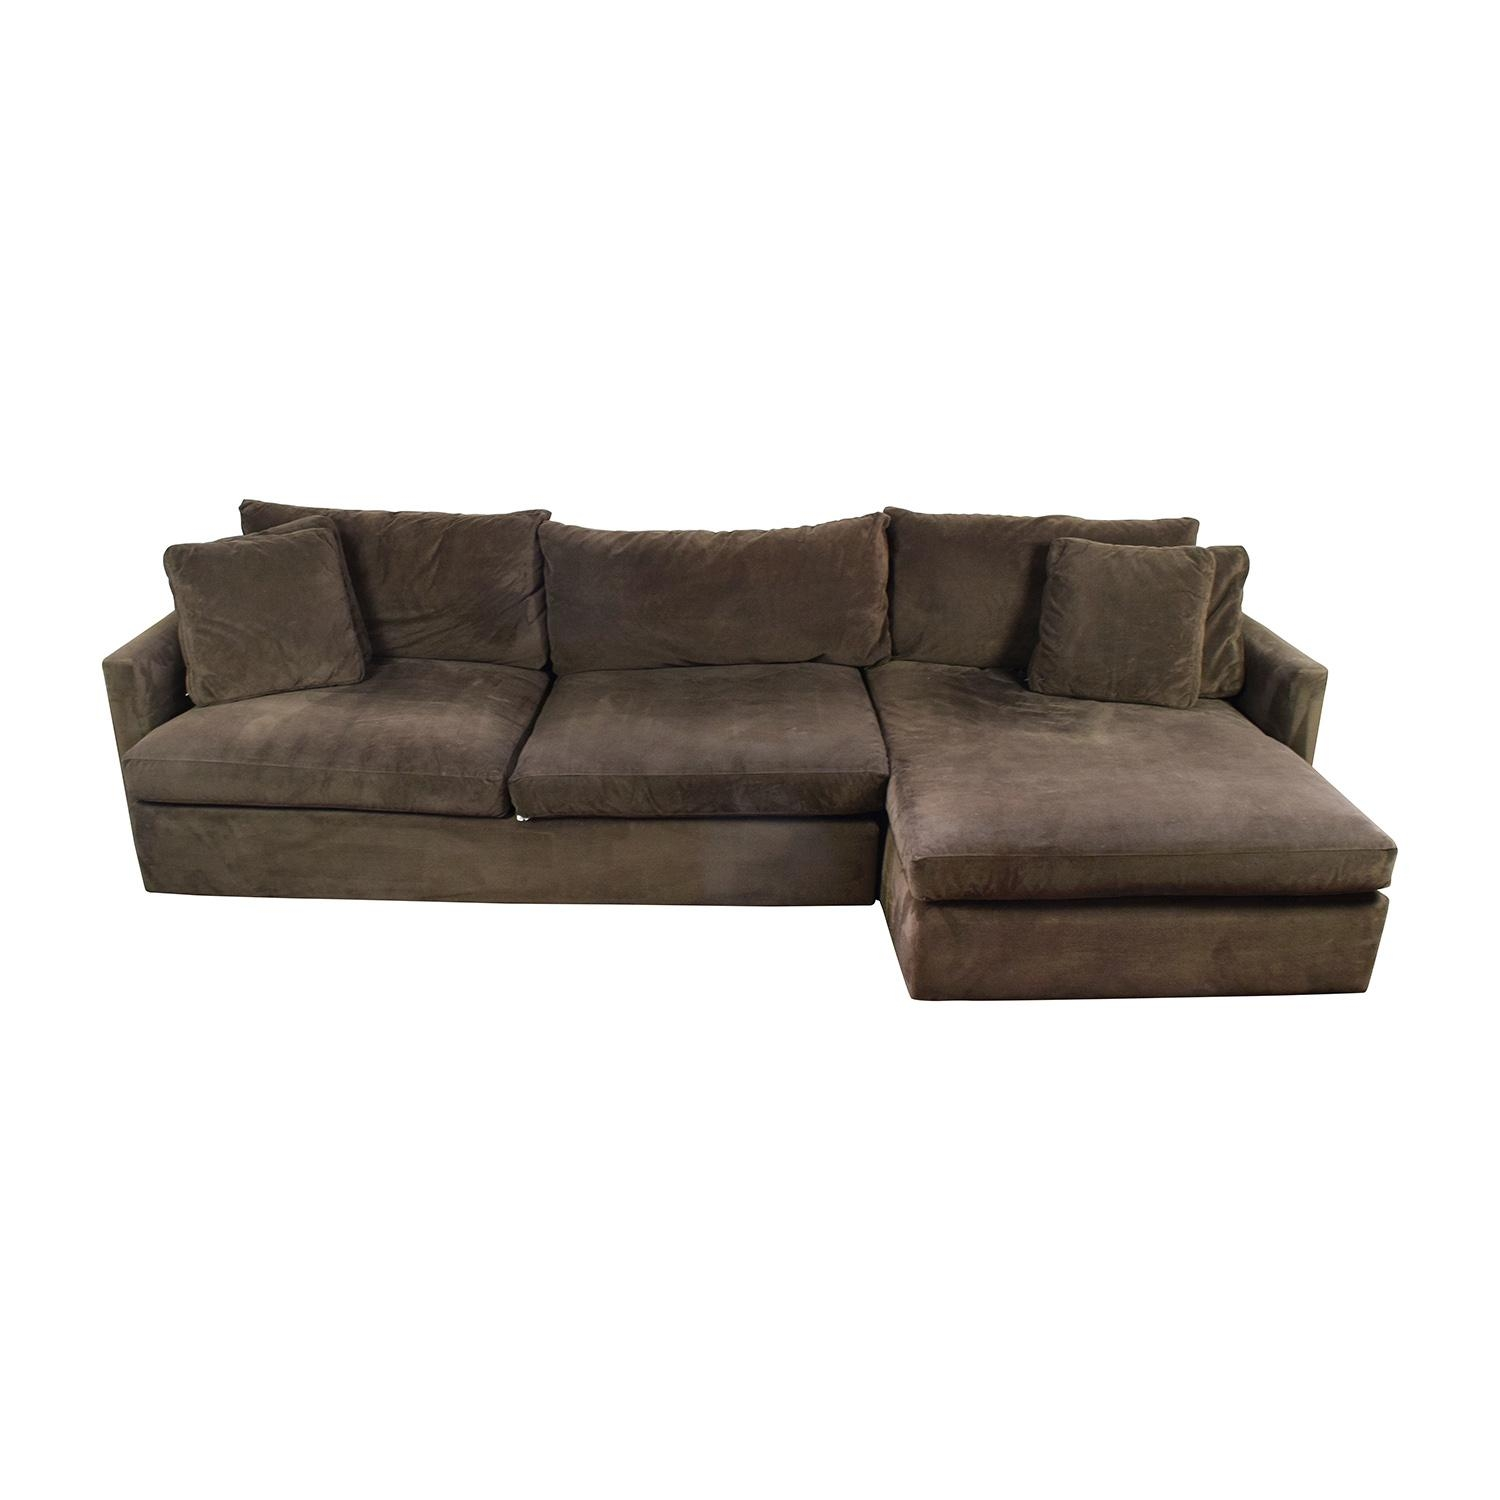 89% Off – Crate And Barrel Crate & Barrel Brown Left Arm Sectional Intended For Sectional Crate And Barrel (Photo 6 of 20)